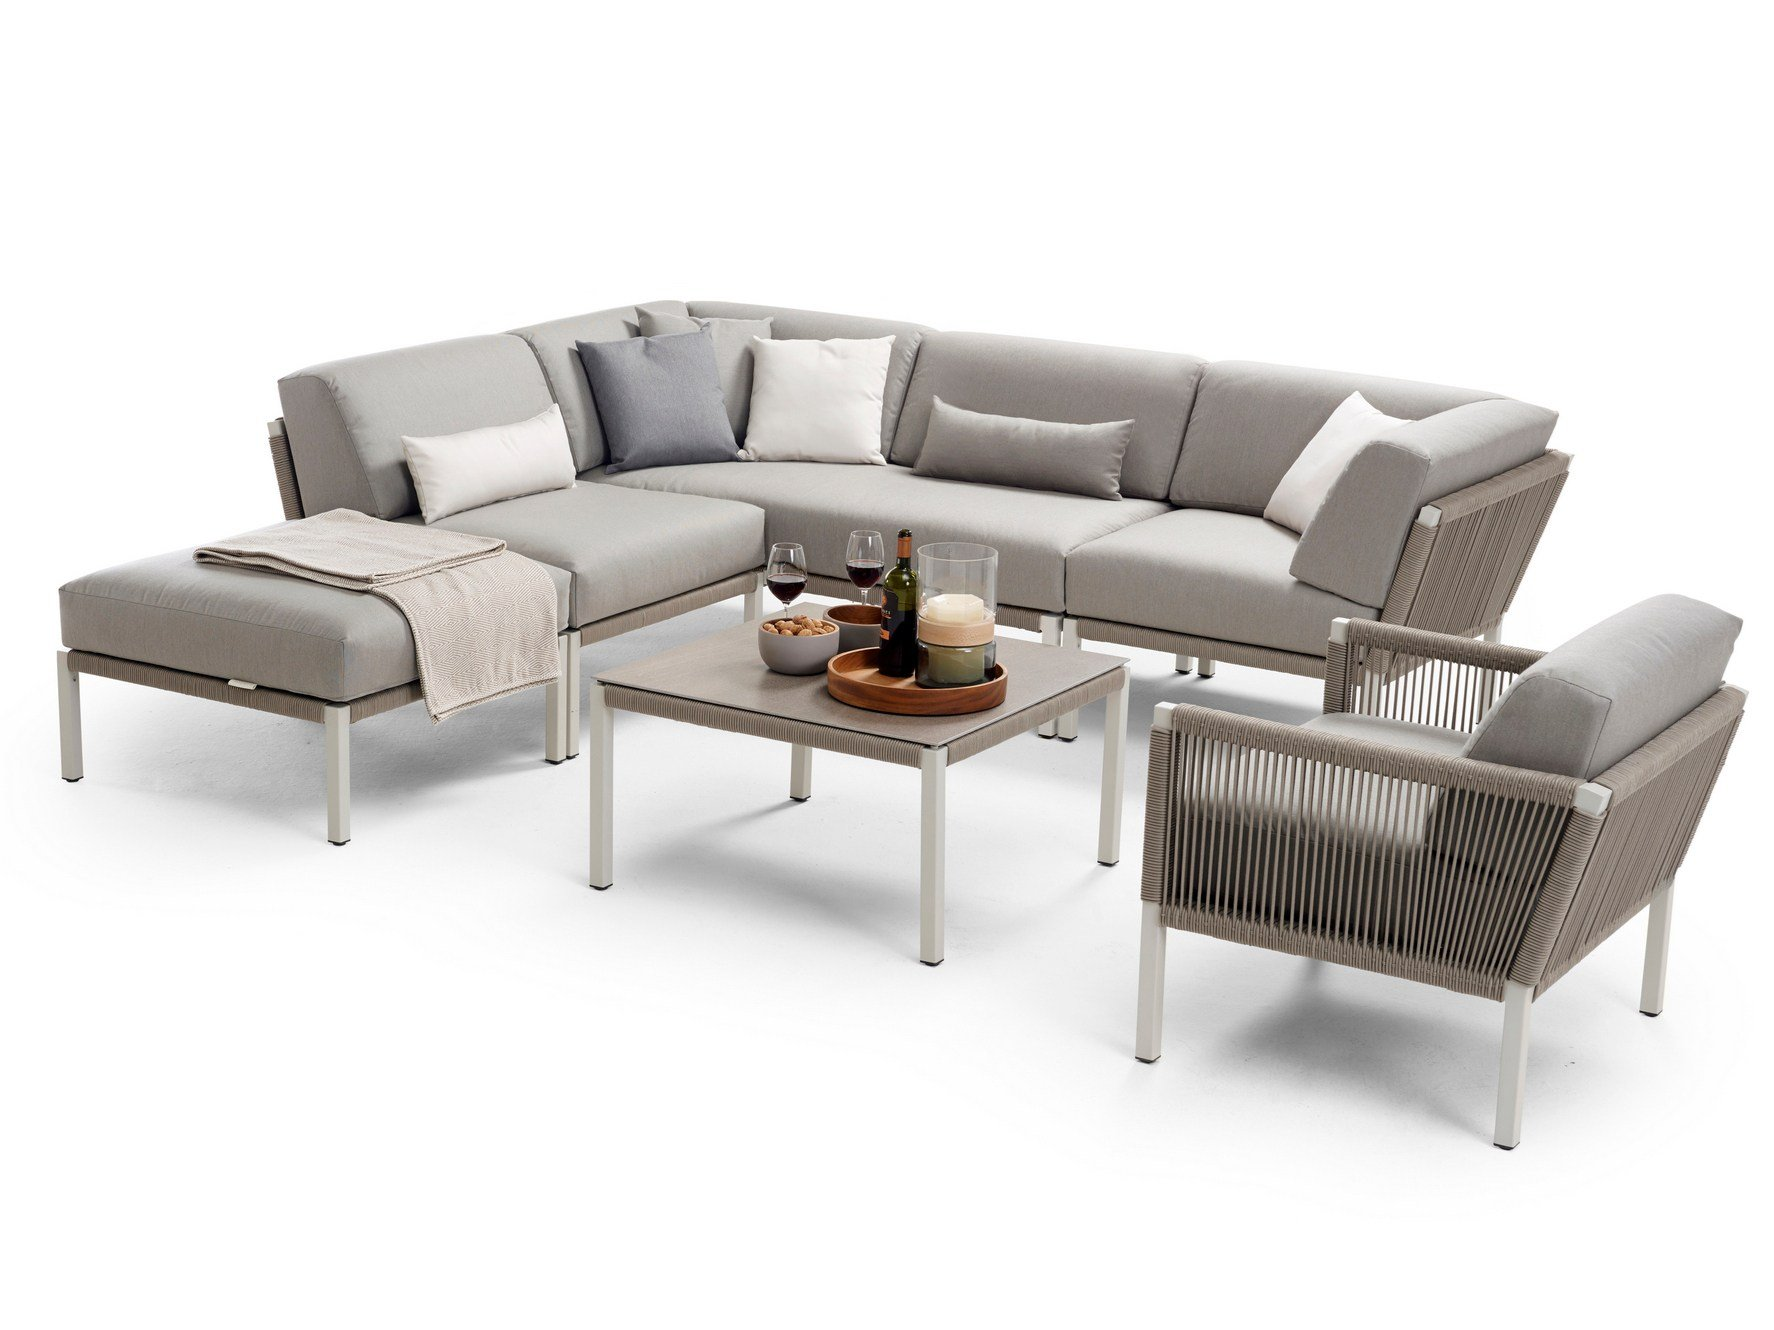 Club sectional sofa by solpuri design klaus nolting for Design studio sectional sofa